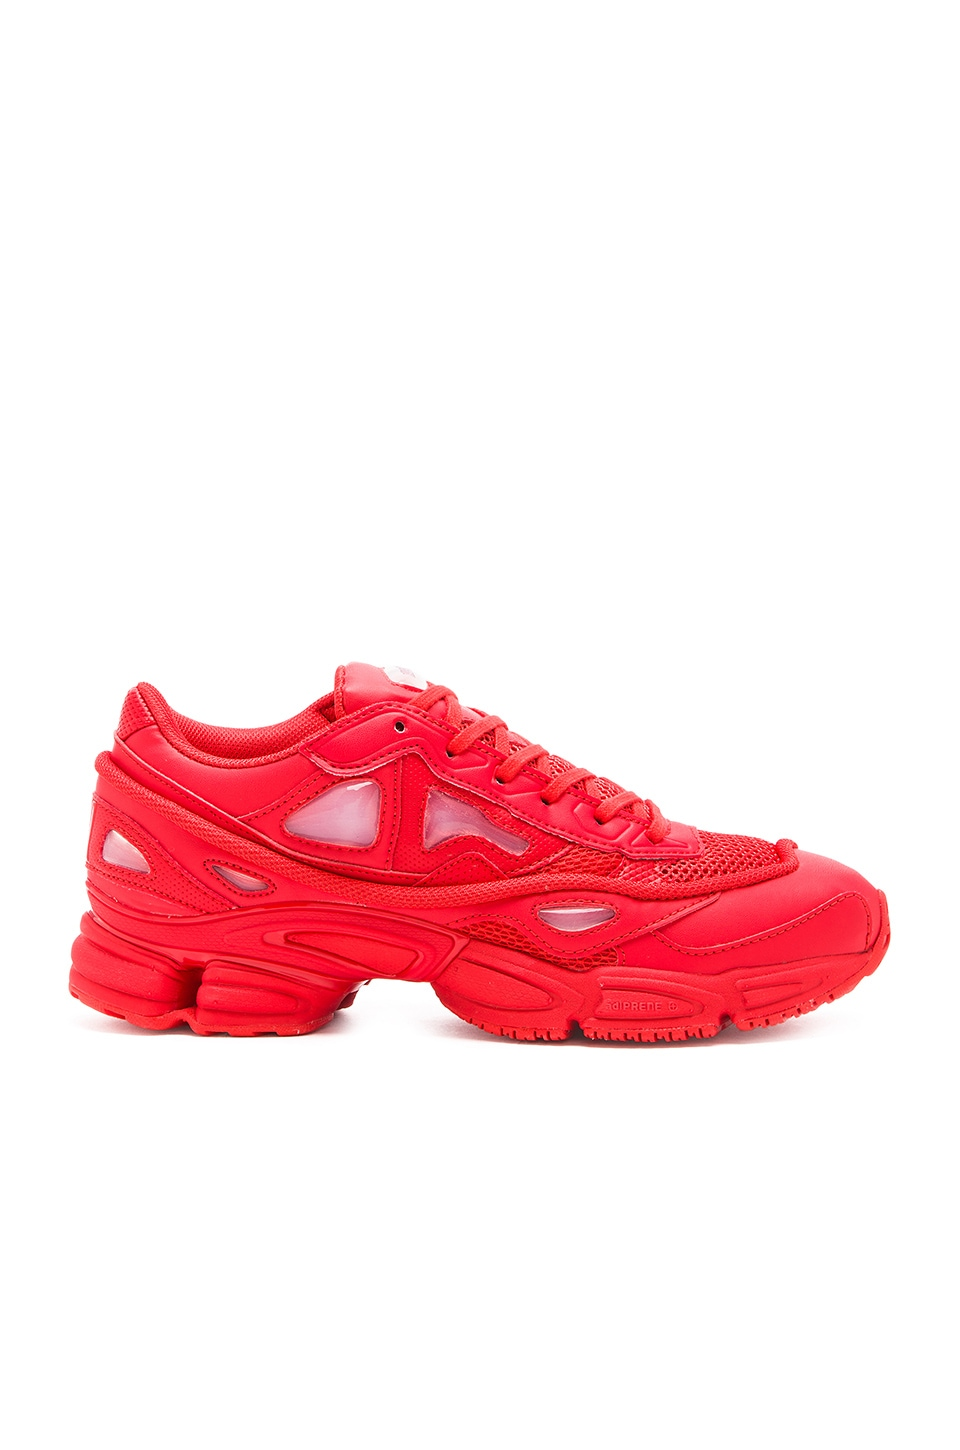 on sale ad105 f5e1e adidas by Raf Simons Ozweego 2 in Red Red Red | REVOLVE